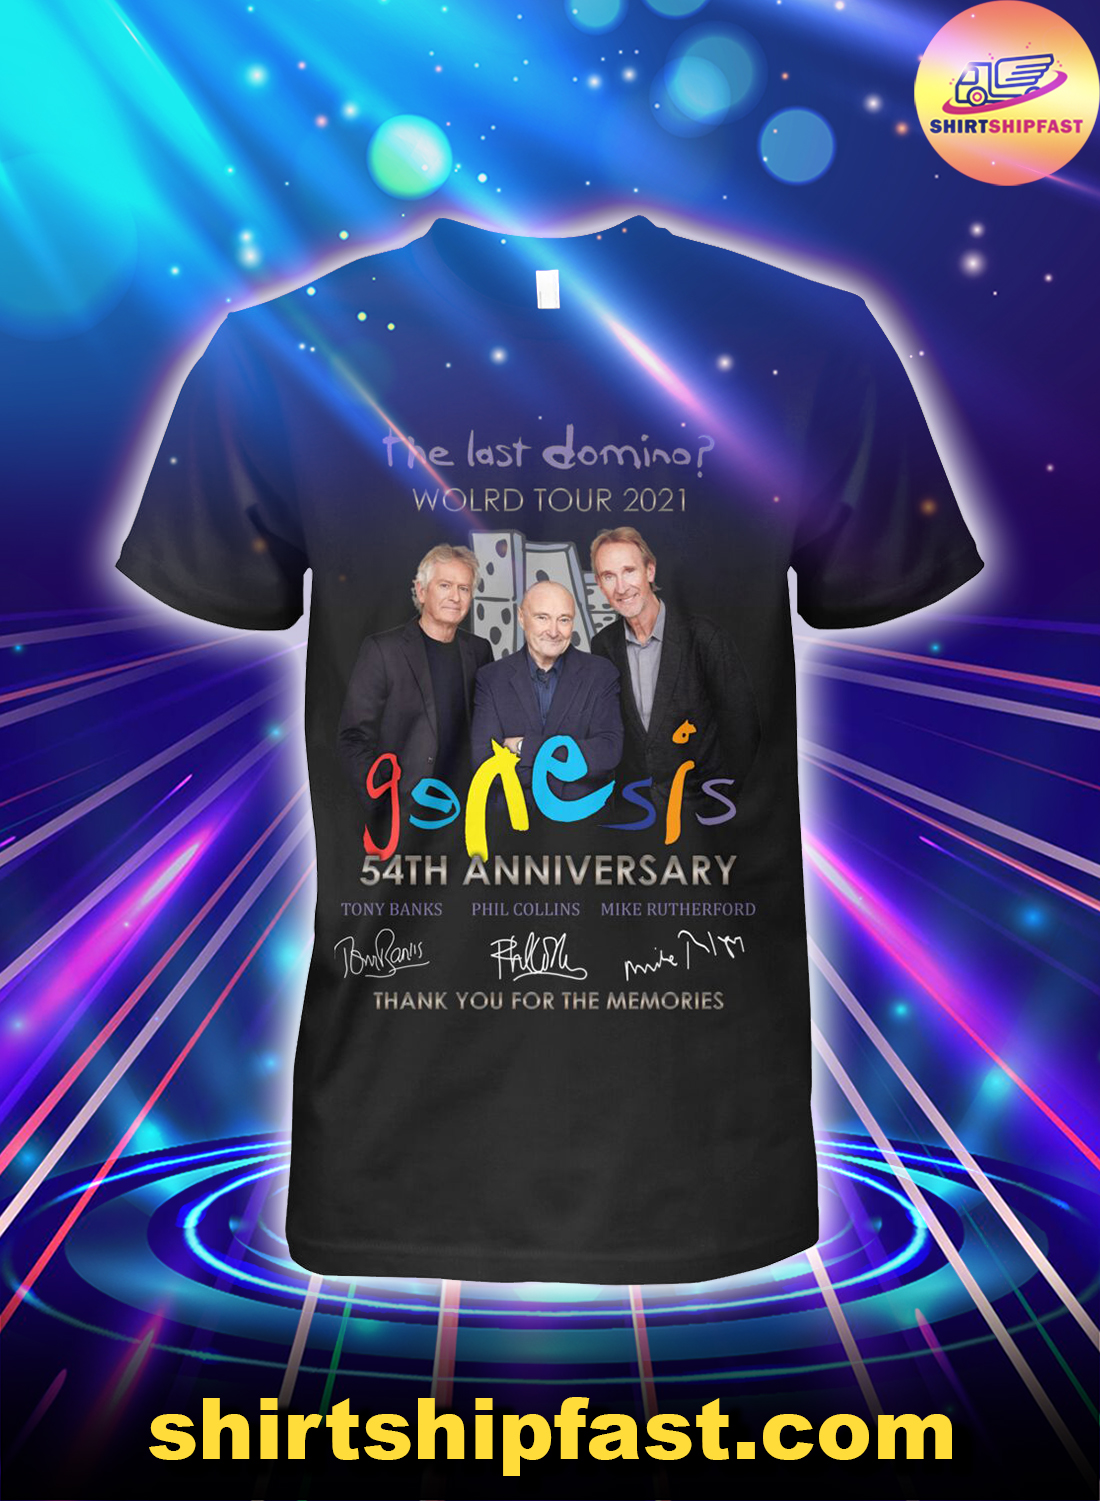 The last domino world tour 2021 Genesis 54th anniversary thank you for the memories shirt